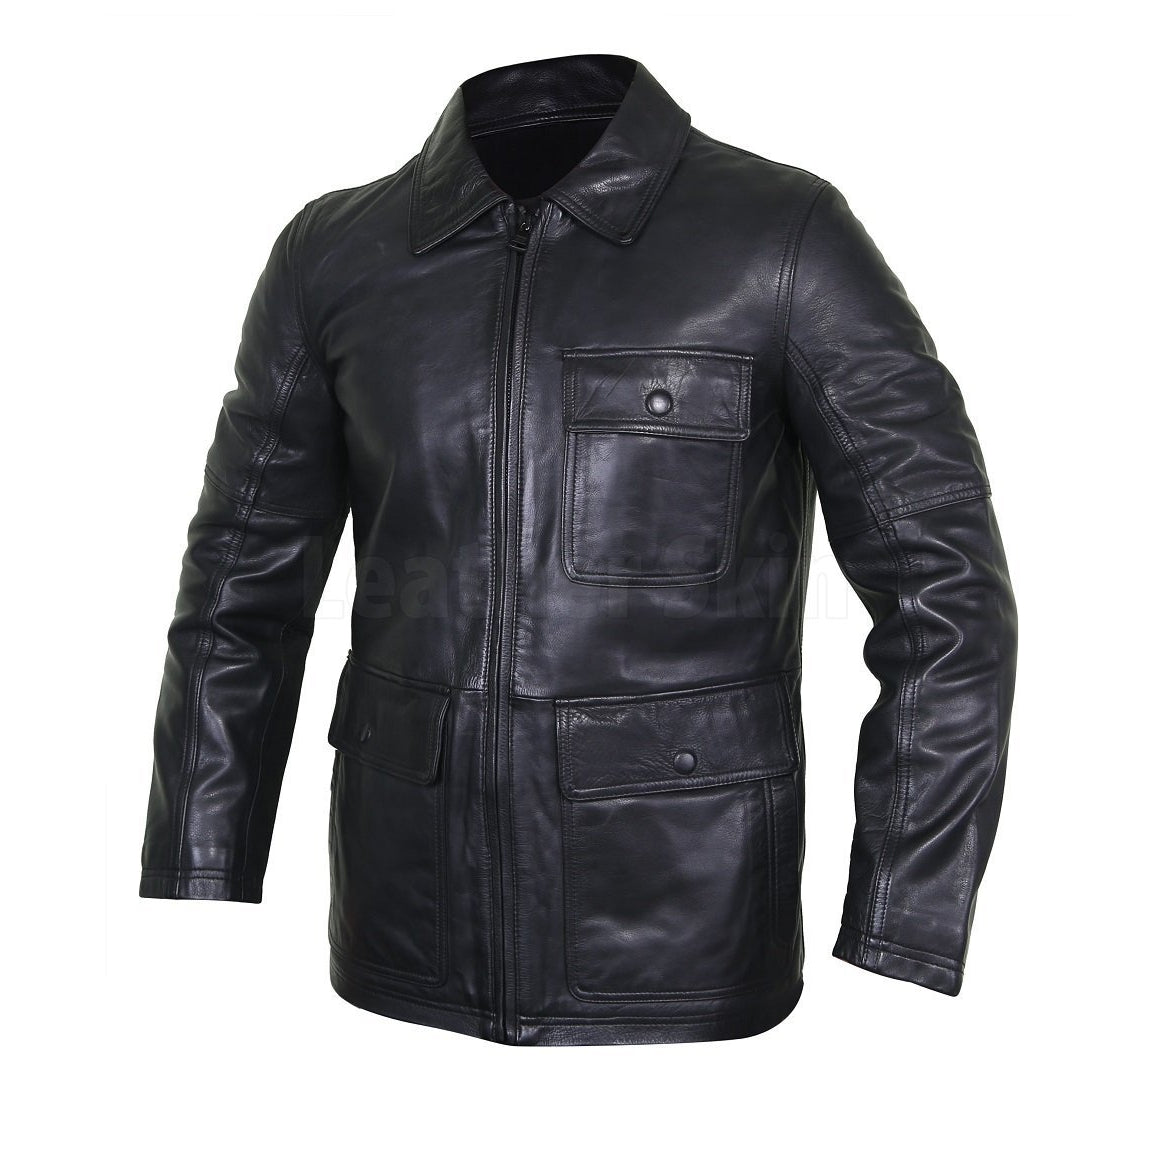 Collared Black Men's Leather Jacket with Flap Pockets